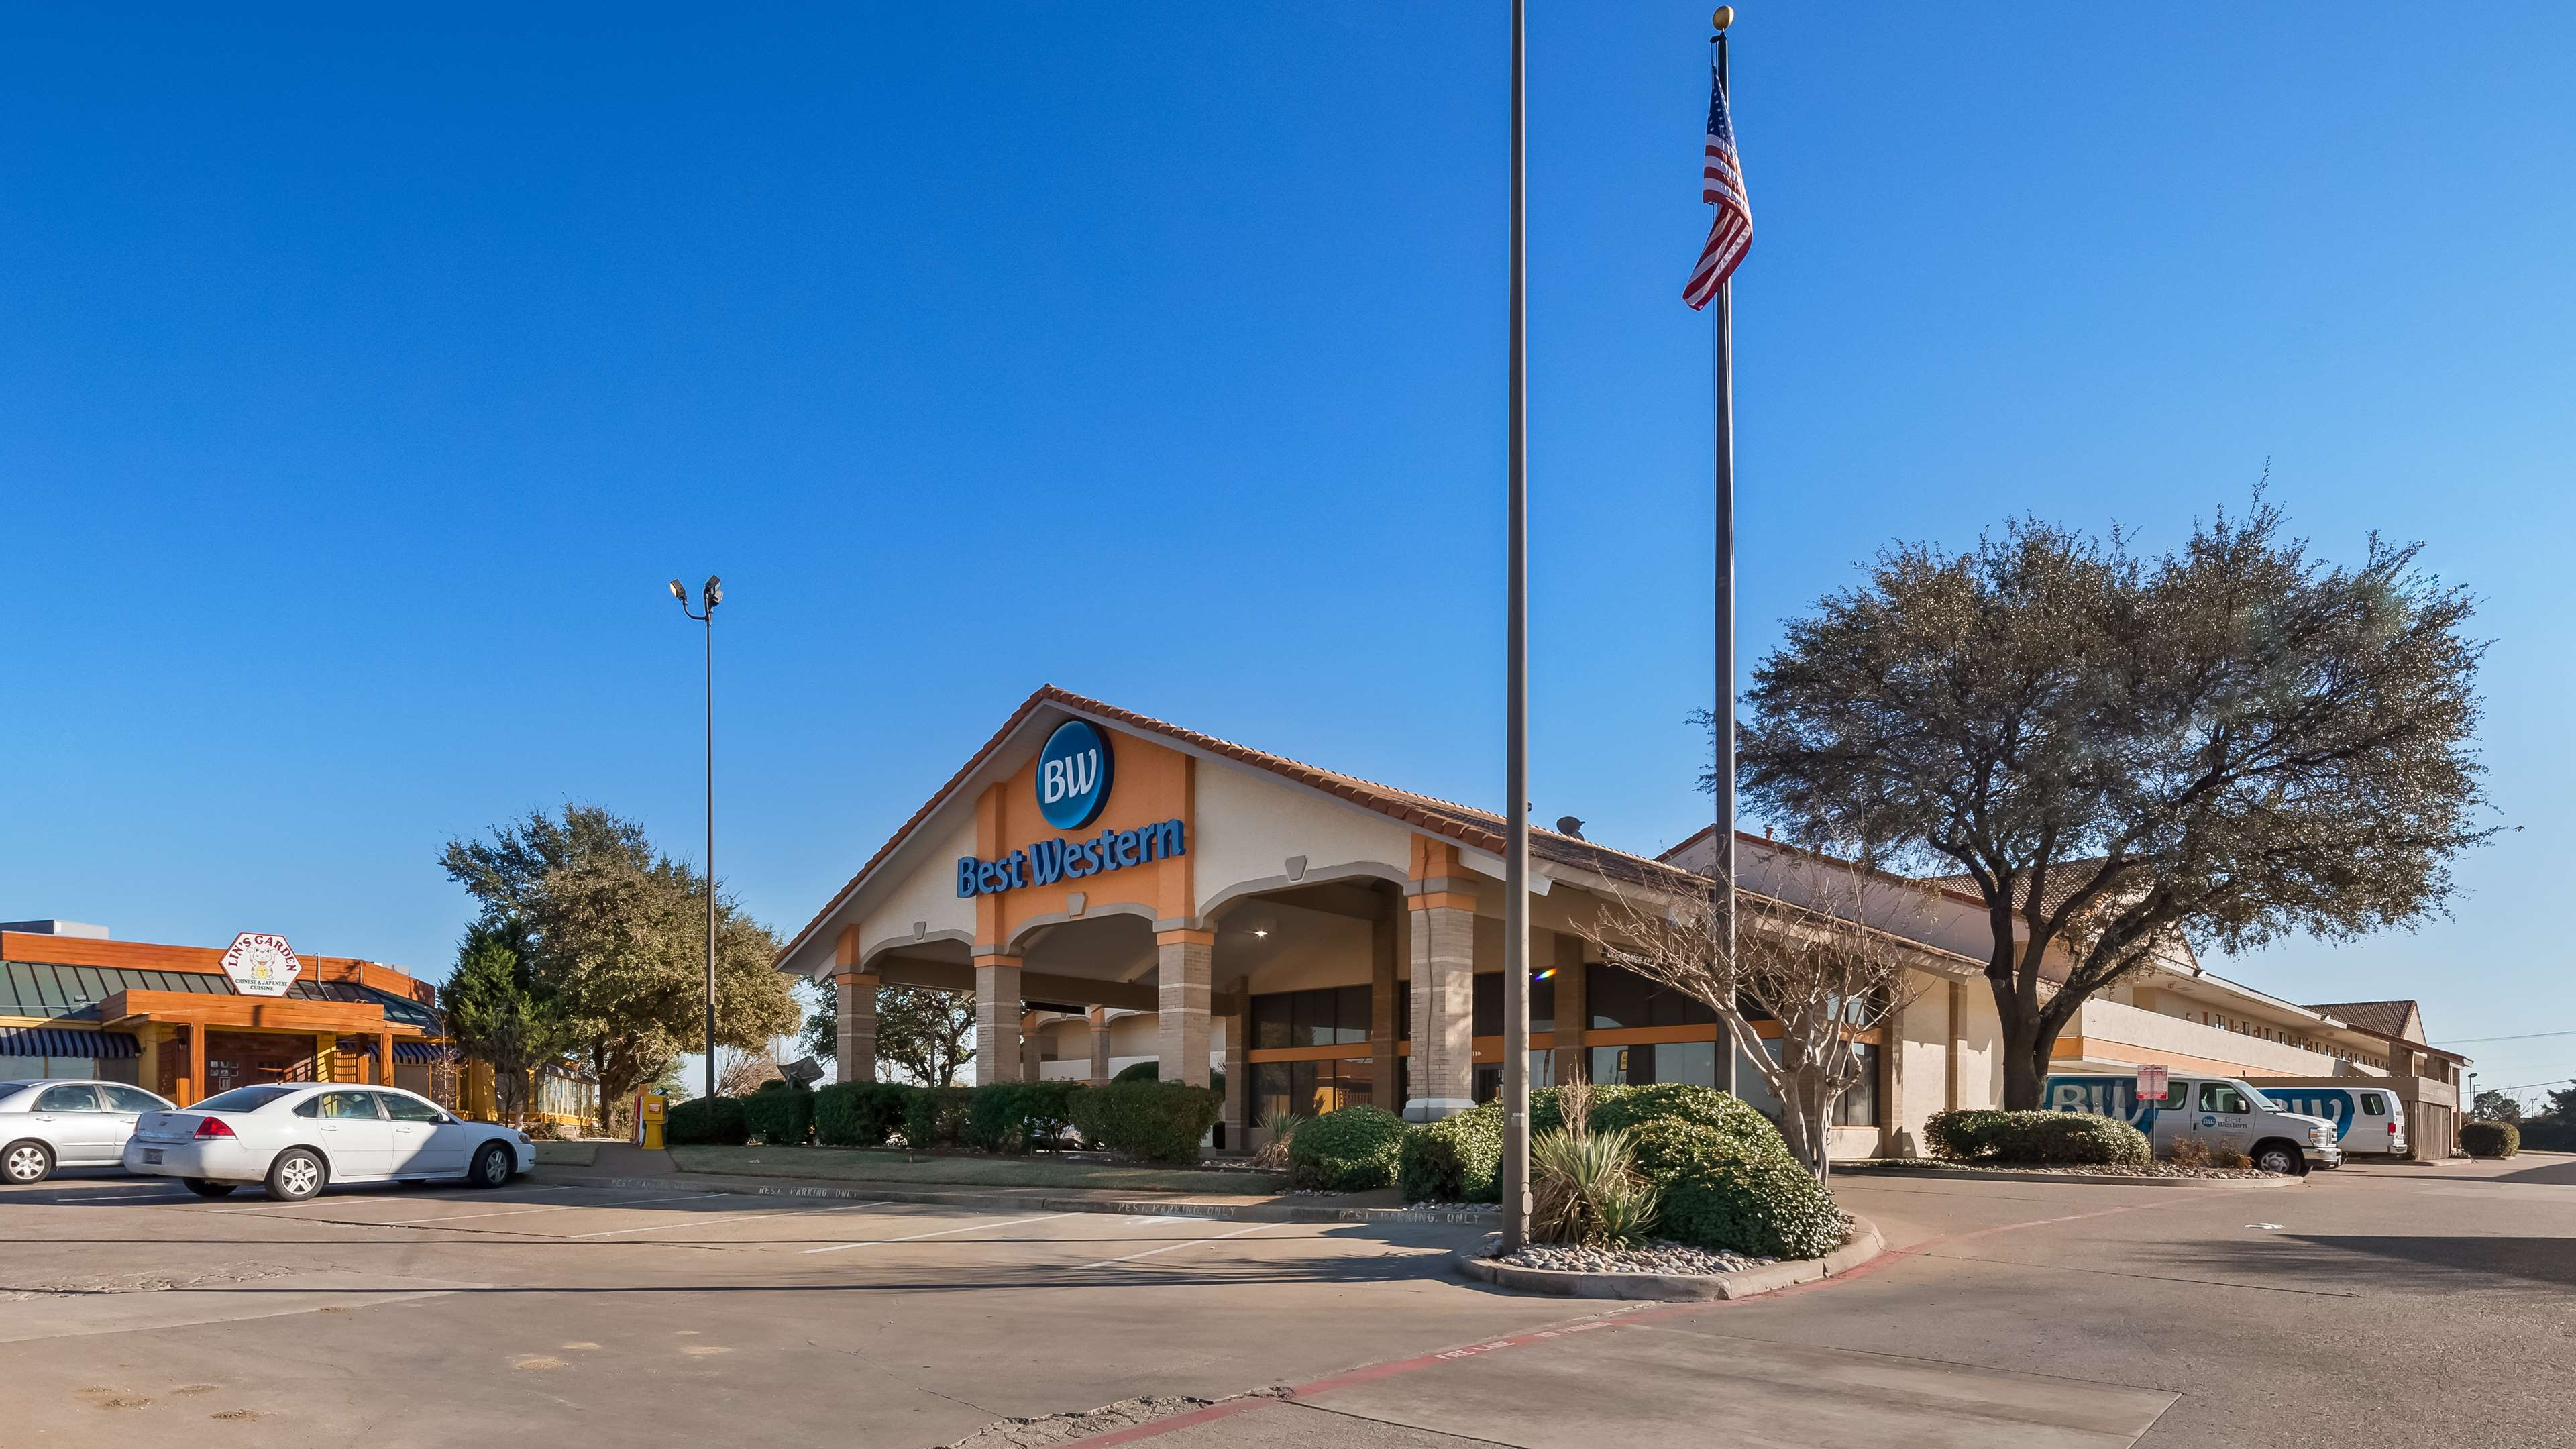 Best Western Irving Inn & Suites at DFW Airport image 0